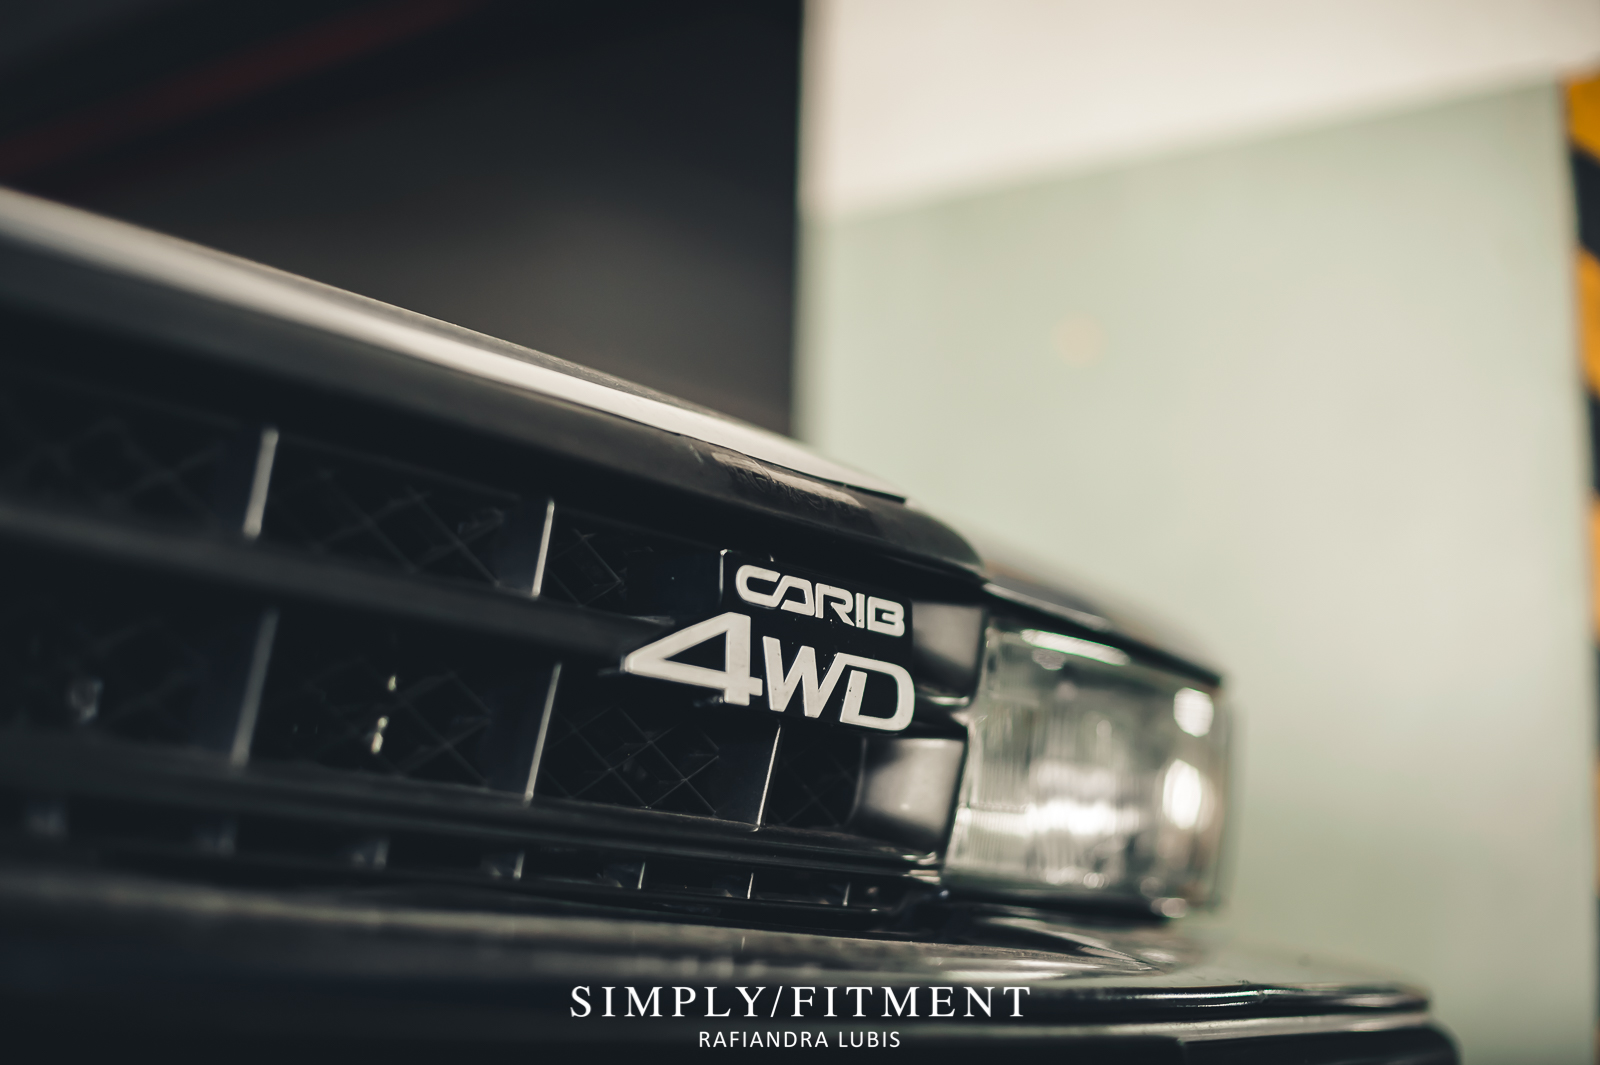 LOWFITMENT DAY 14 - DAY 1 13 NOVEMBER 2020